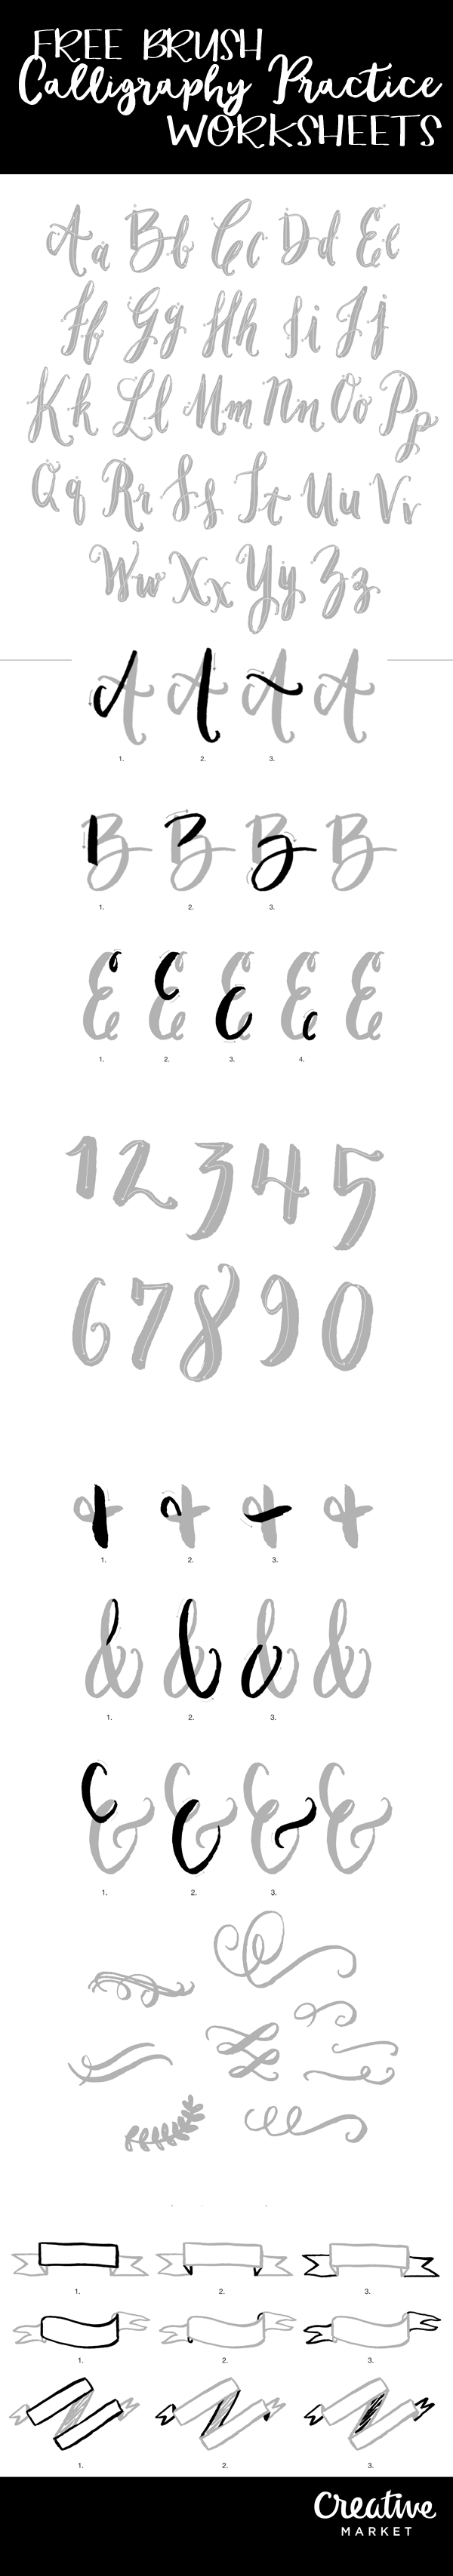 free-brush-calligraphy-practice-worksheets